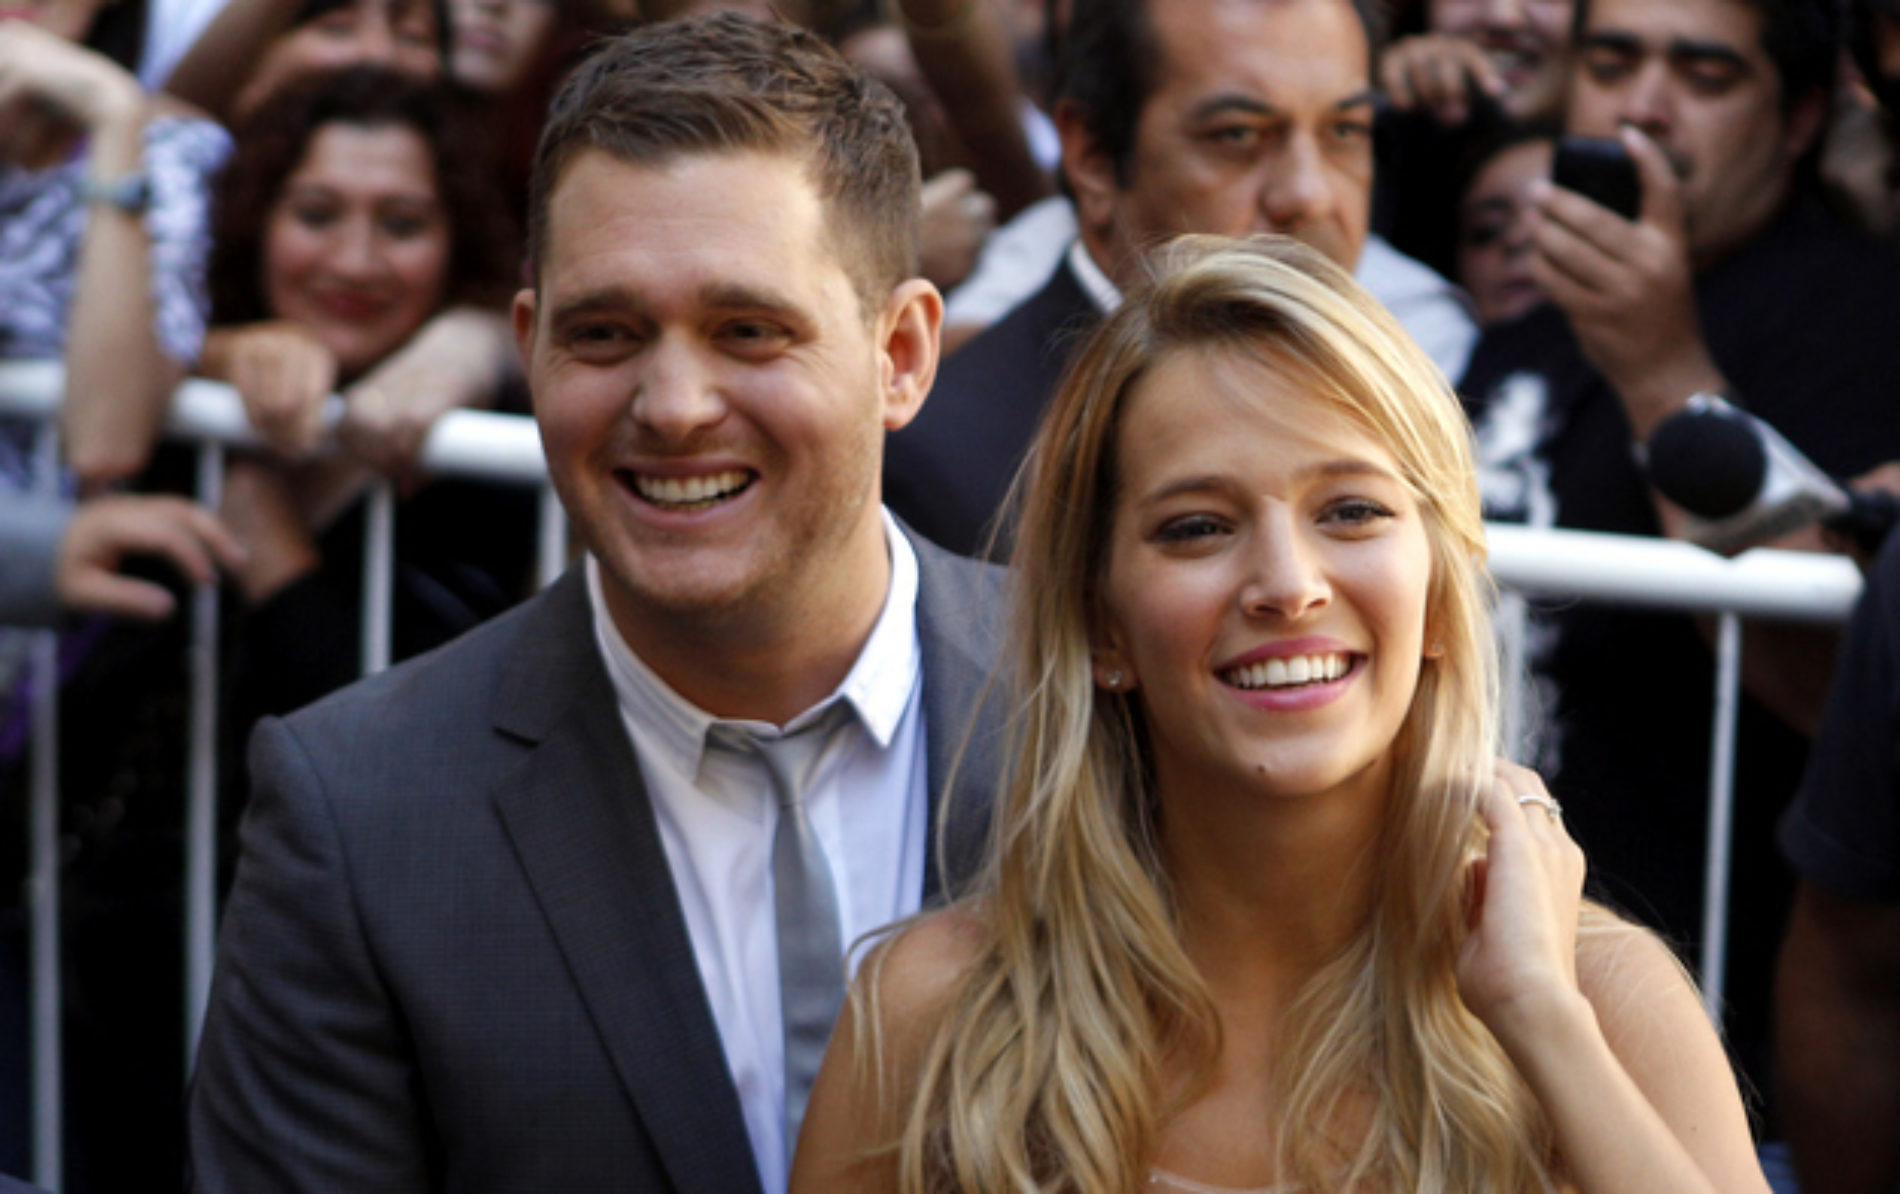 """My Wife Thought I Was Gay When We First Met."" – Michael Bublé"